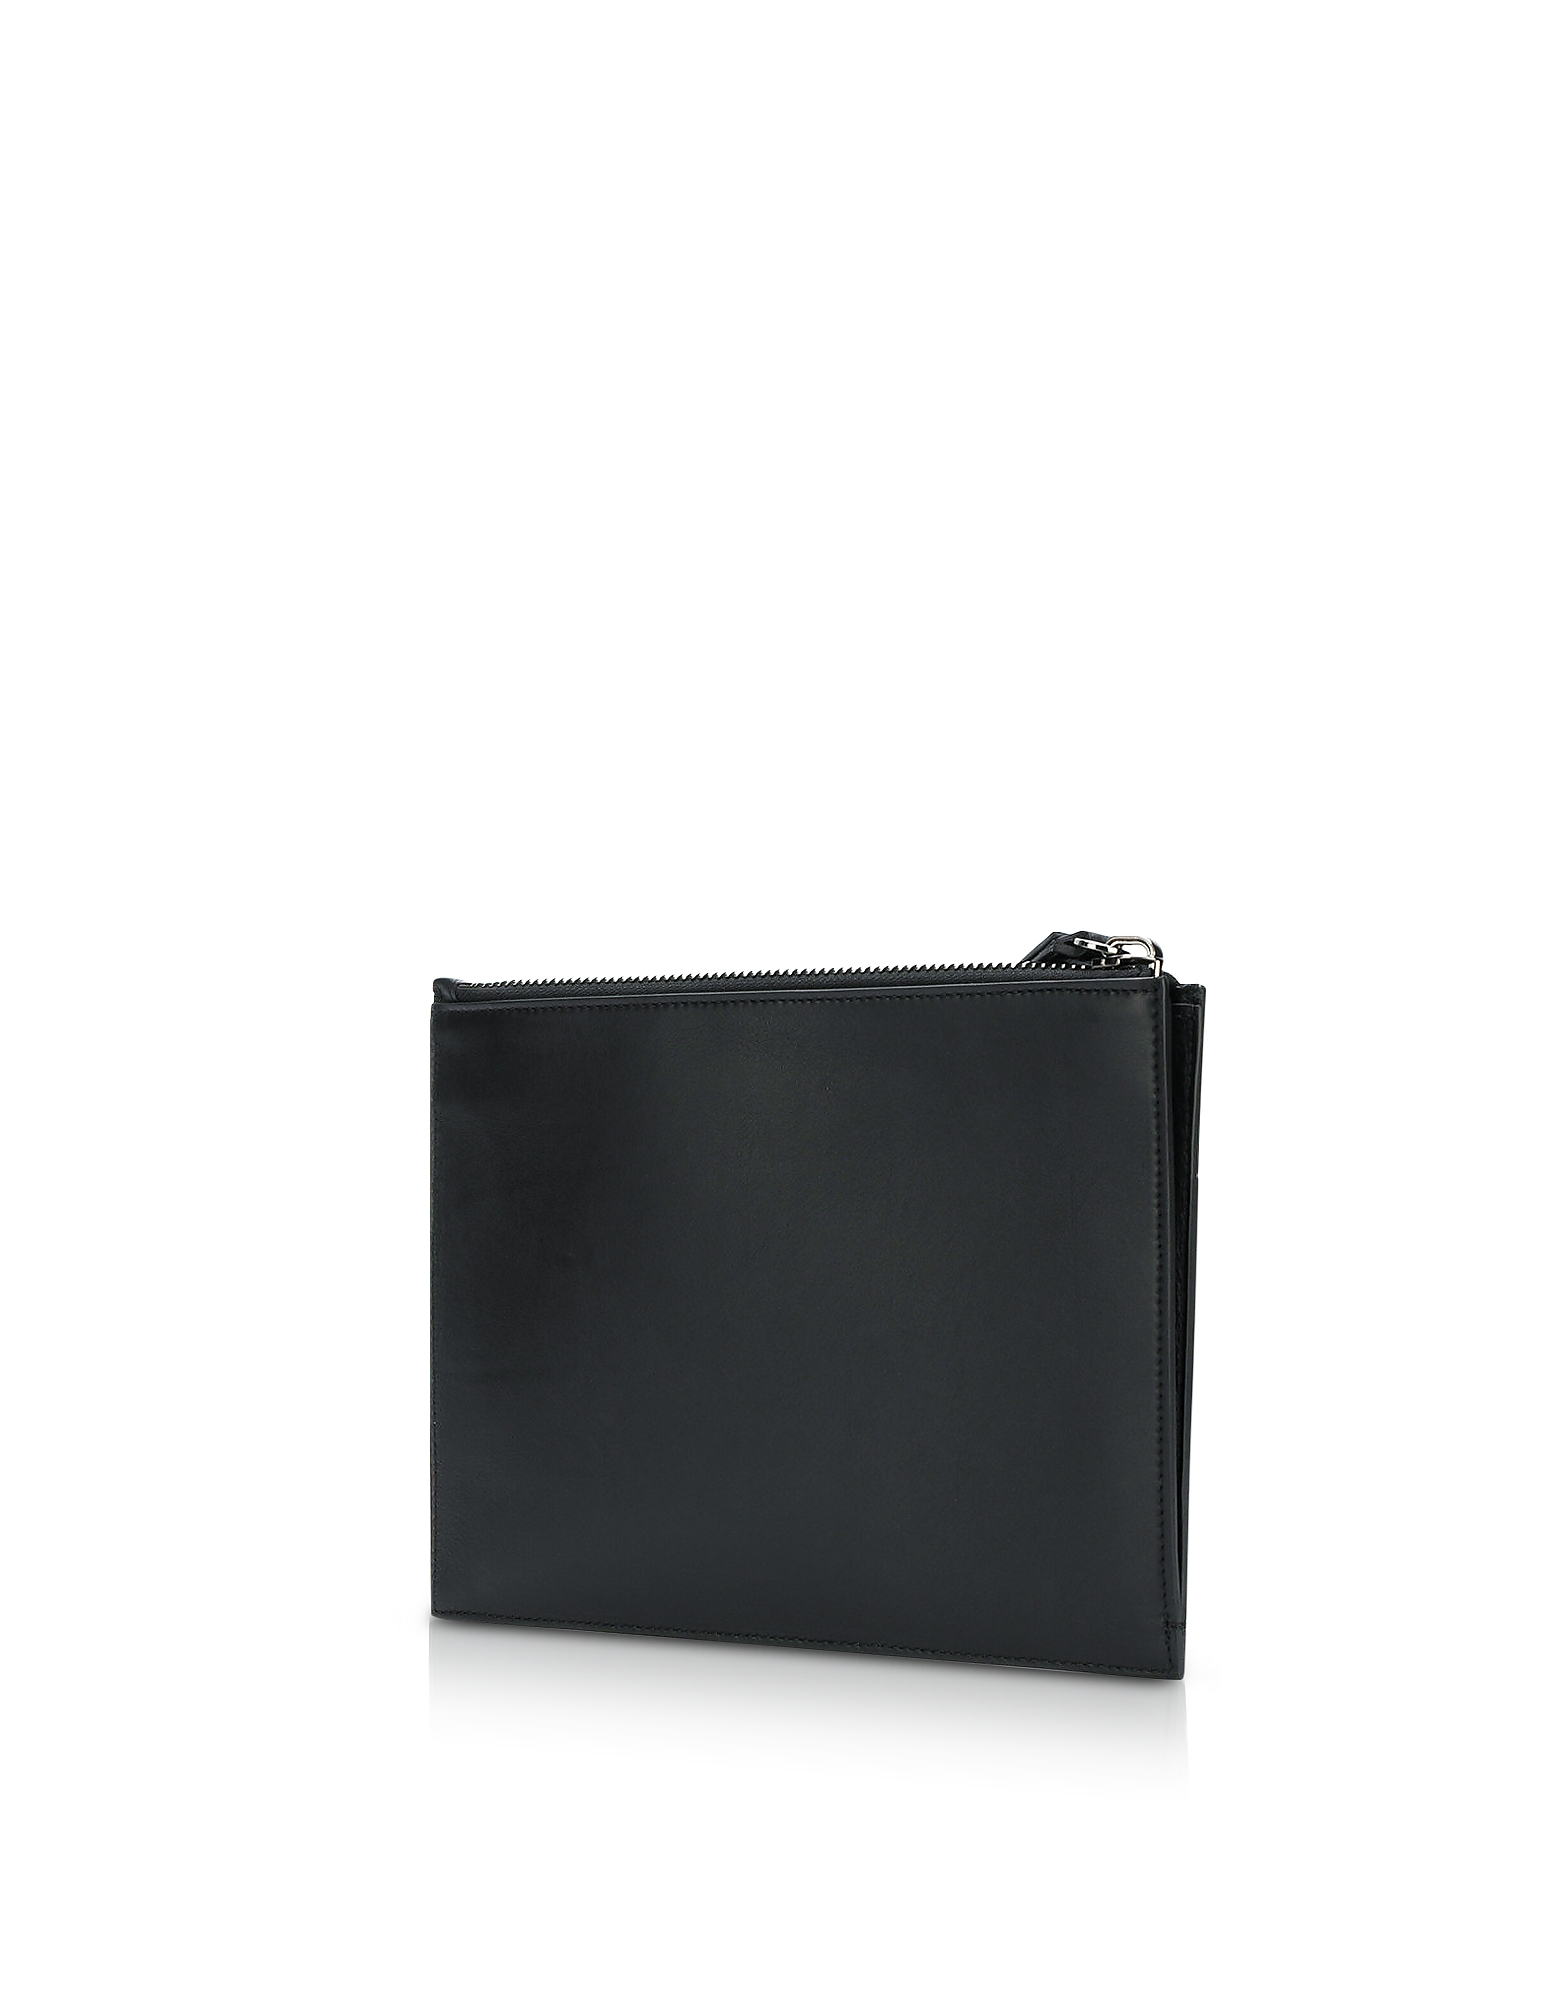 Black Smooth Leather Mini Men's Pouch w/Embossed Signature Blazon от Forzieri.com INT